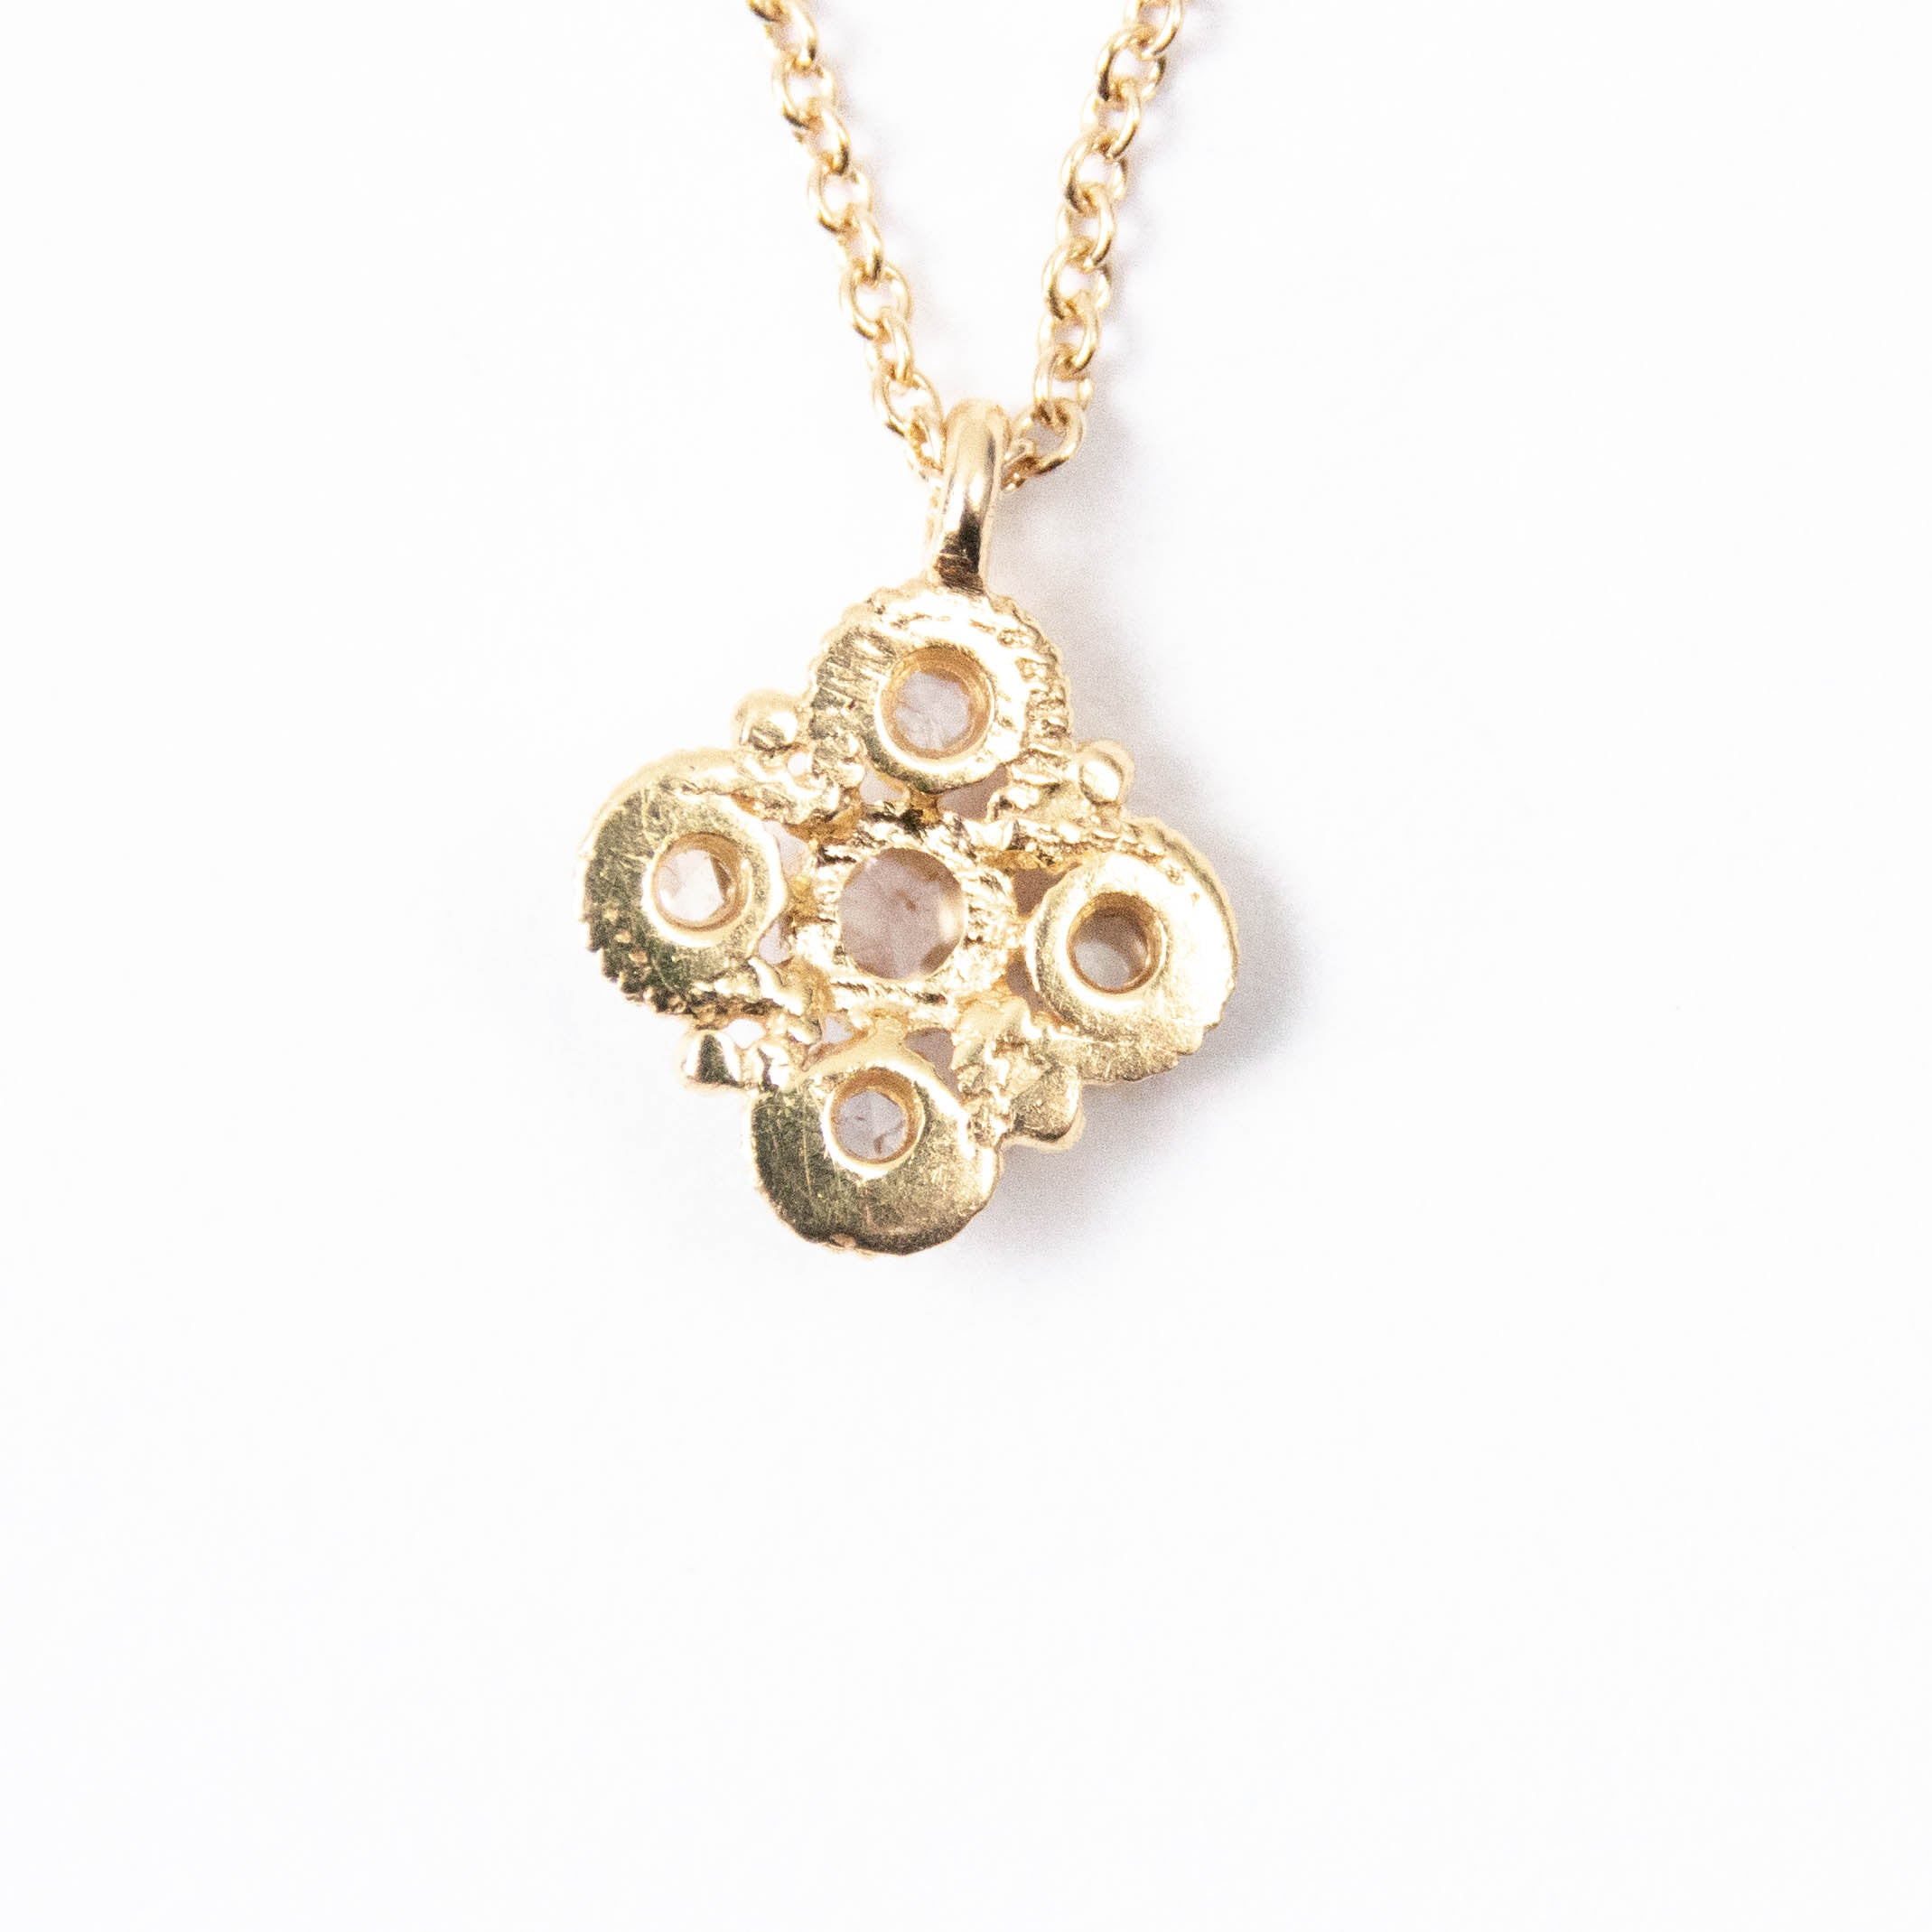 14kt Gold & Diamond Four Leaf Clover Charm Necklace